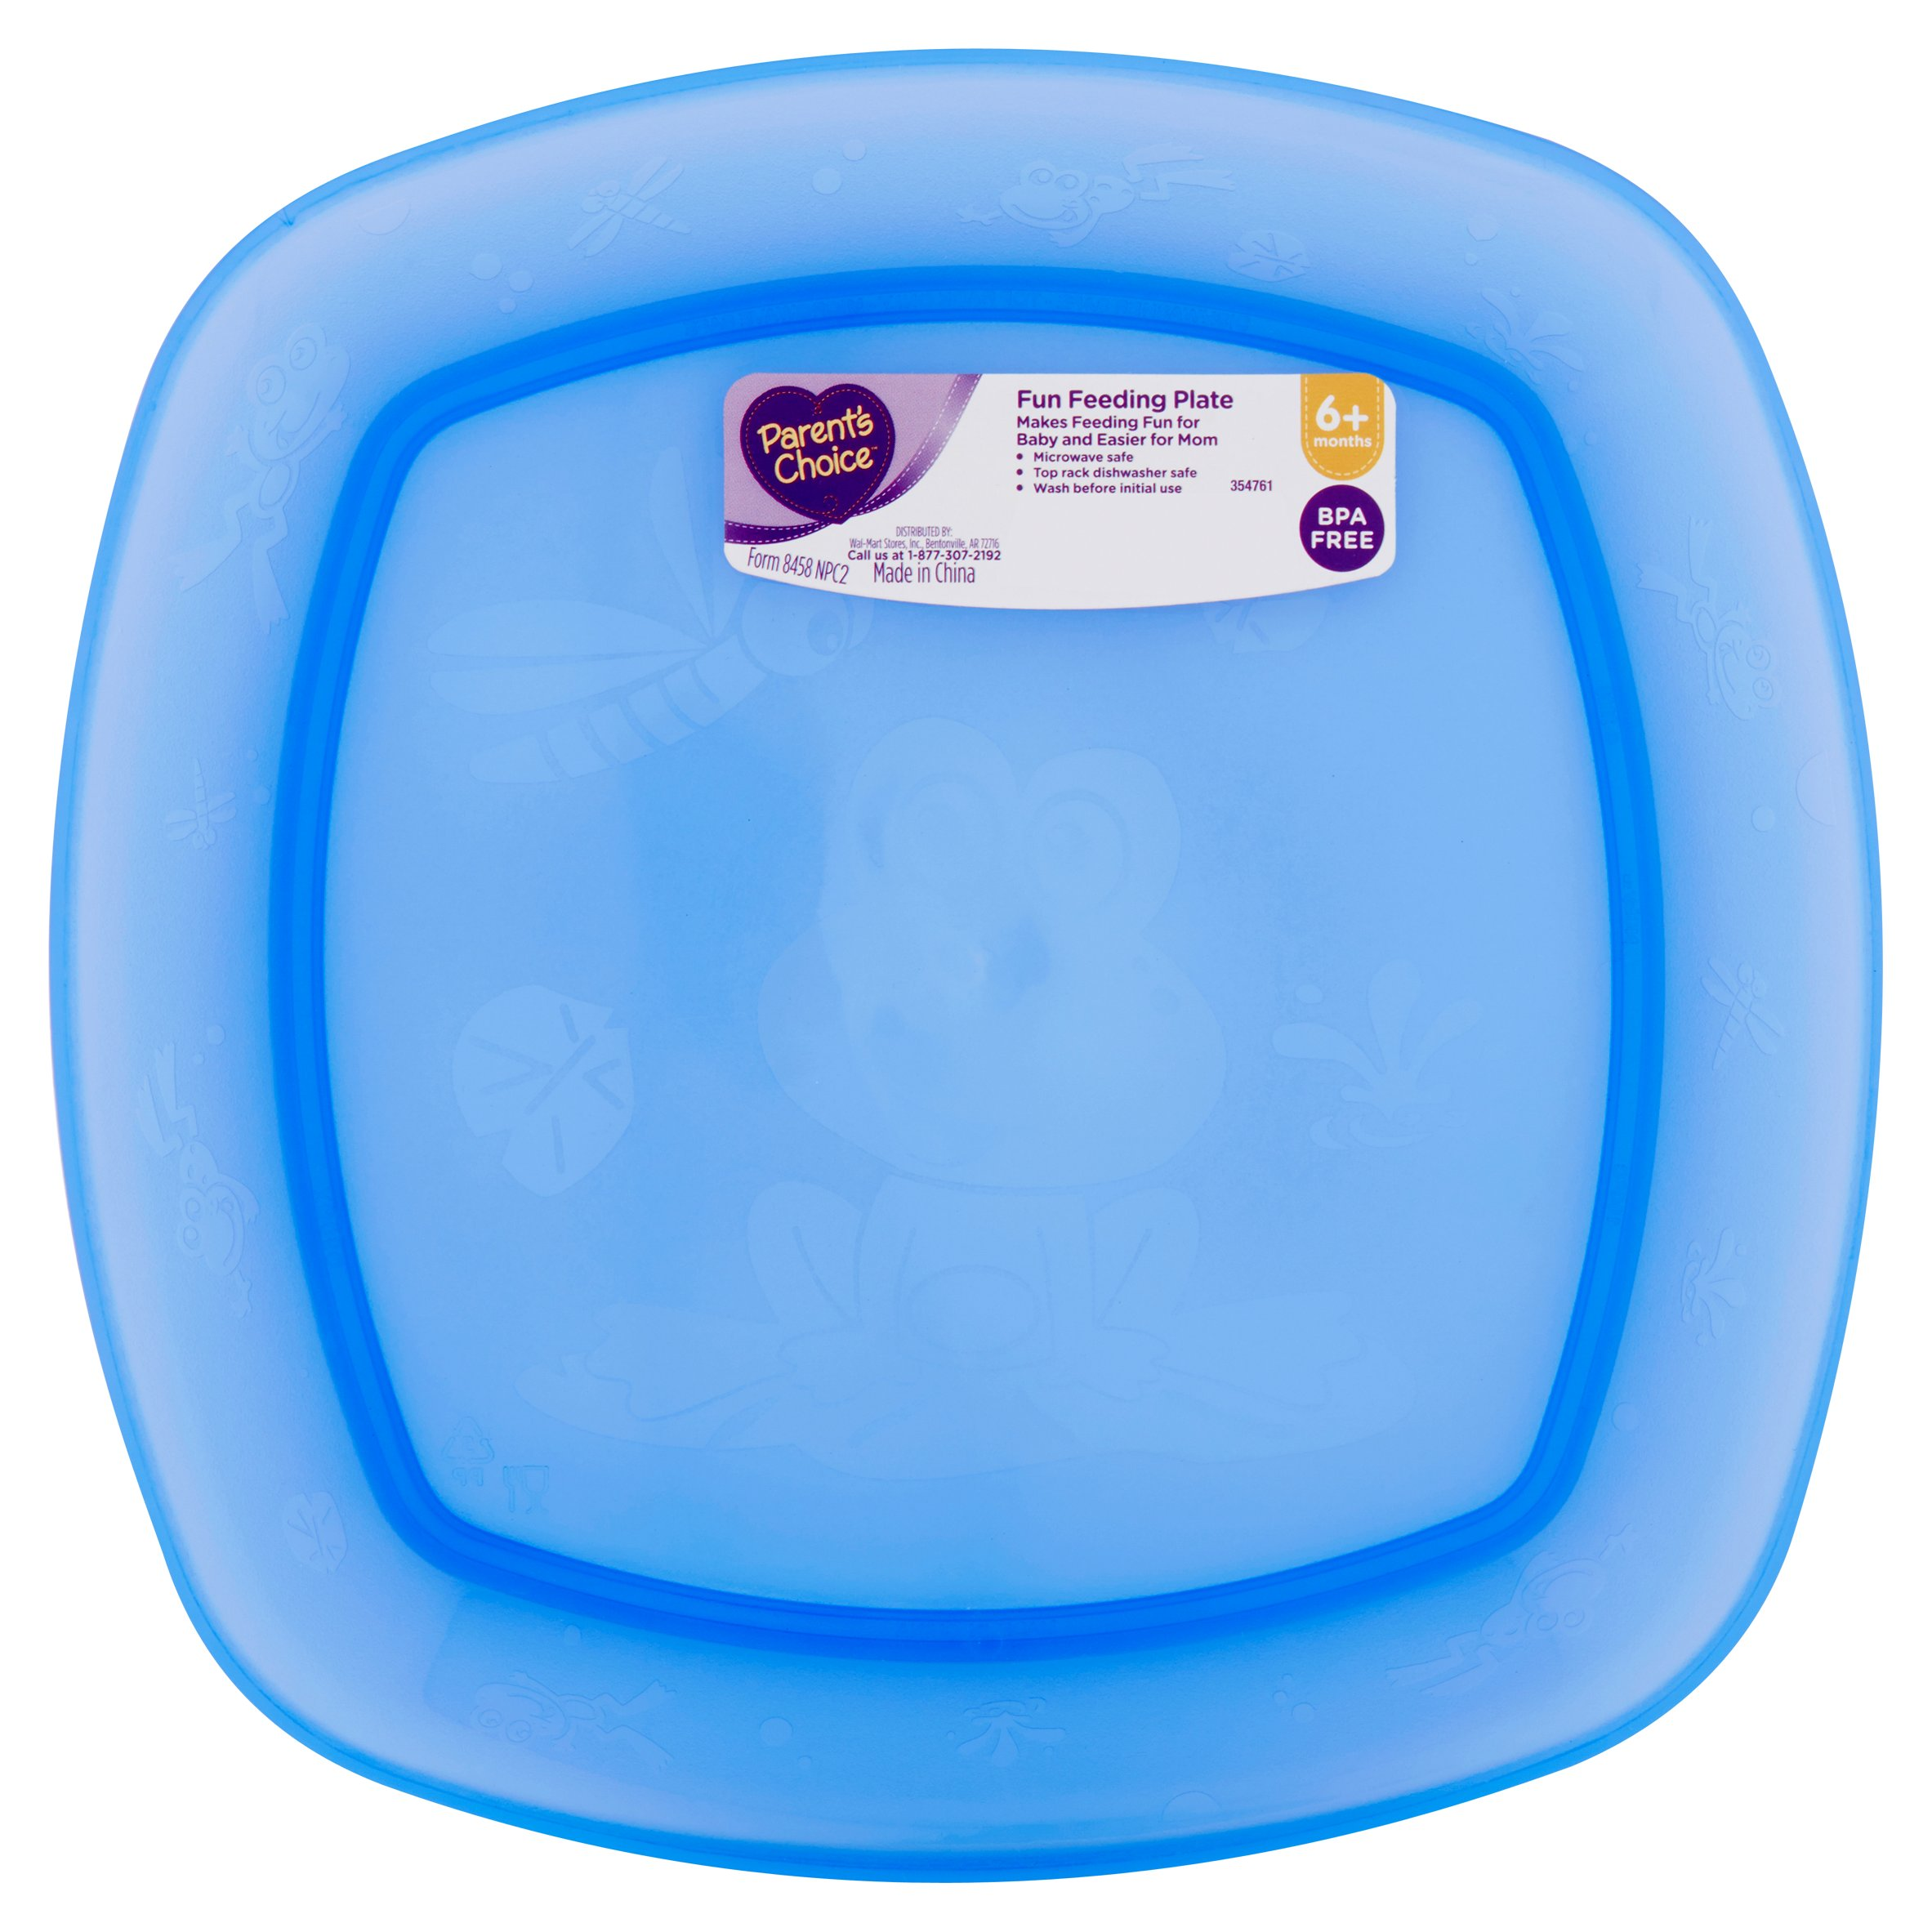 Parent's Choice Square Plate, Colors May Vary